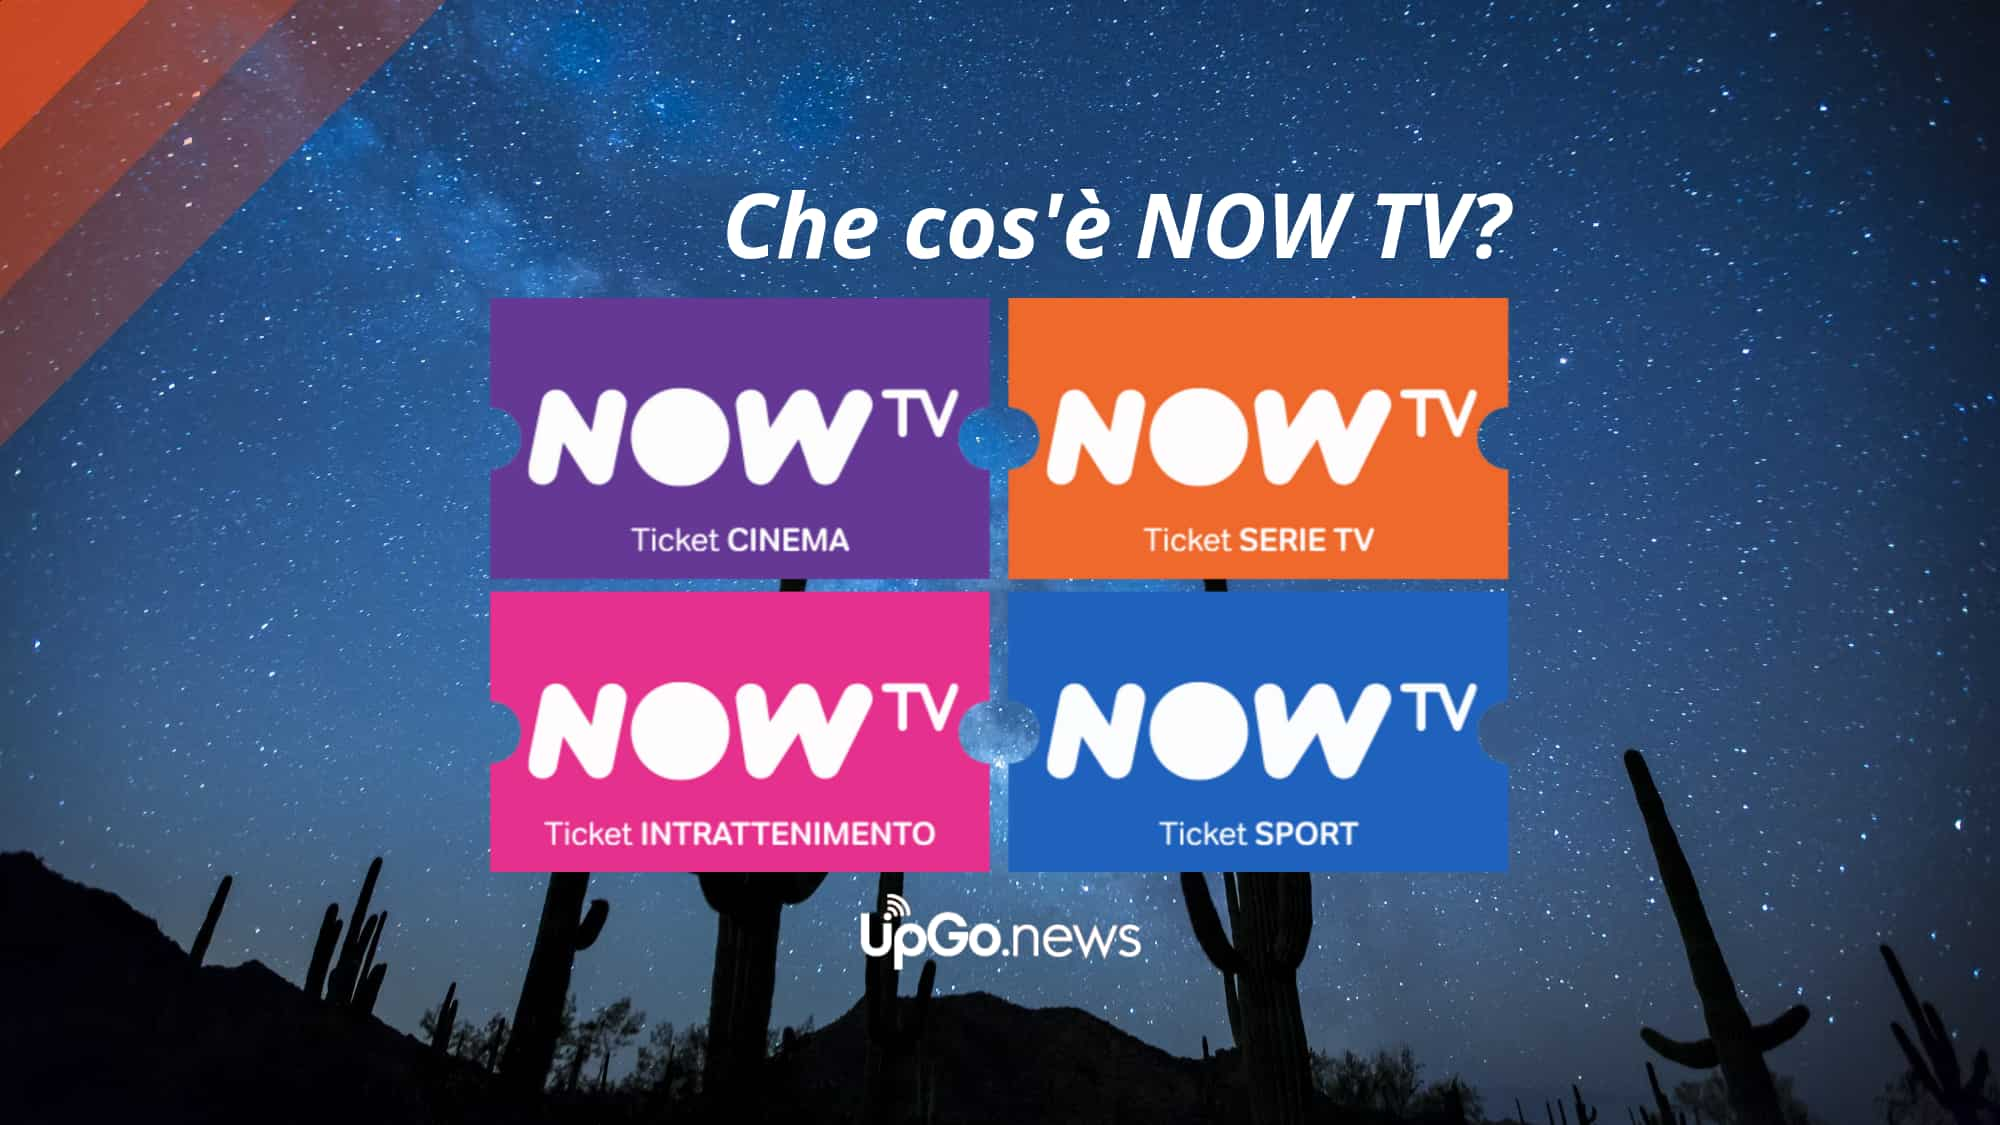 Che cosa è Now Tv